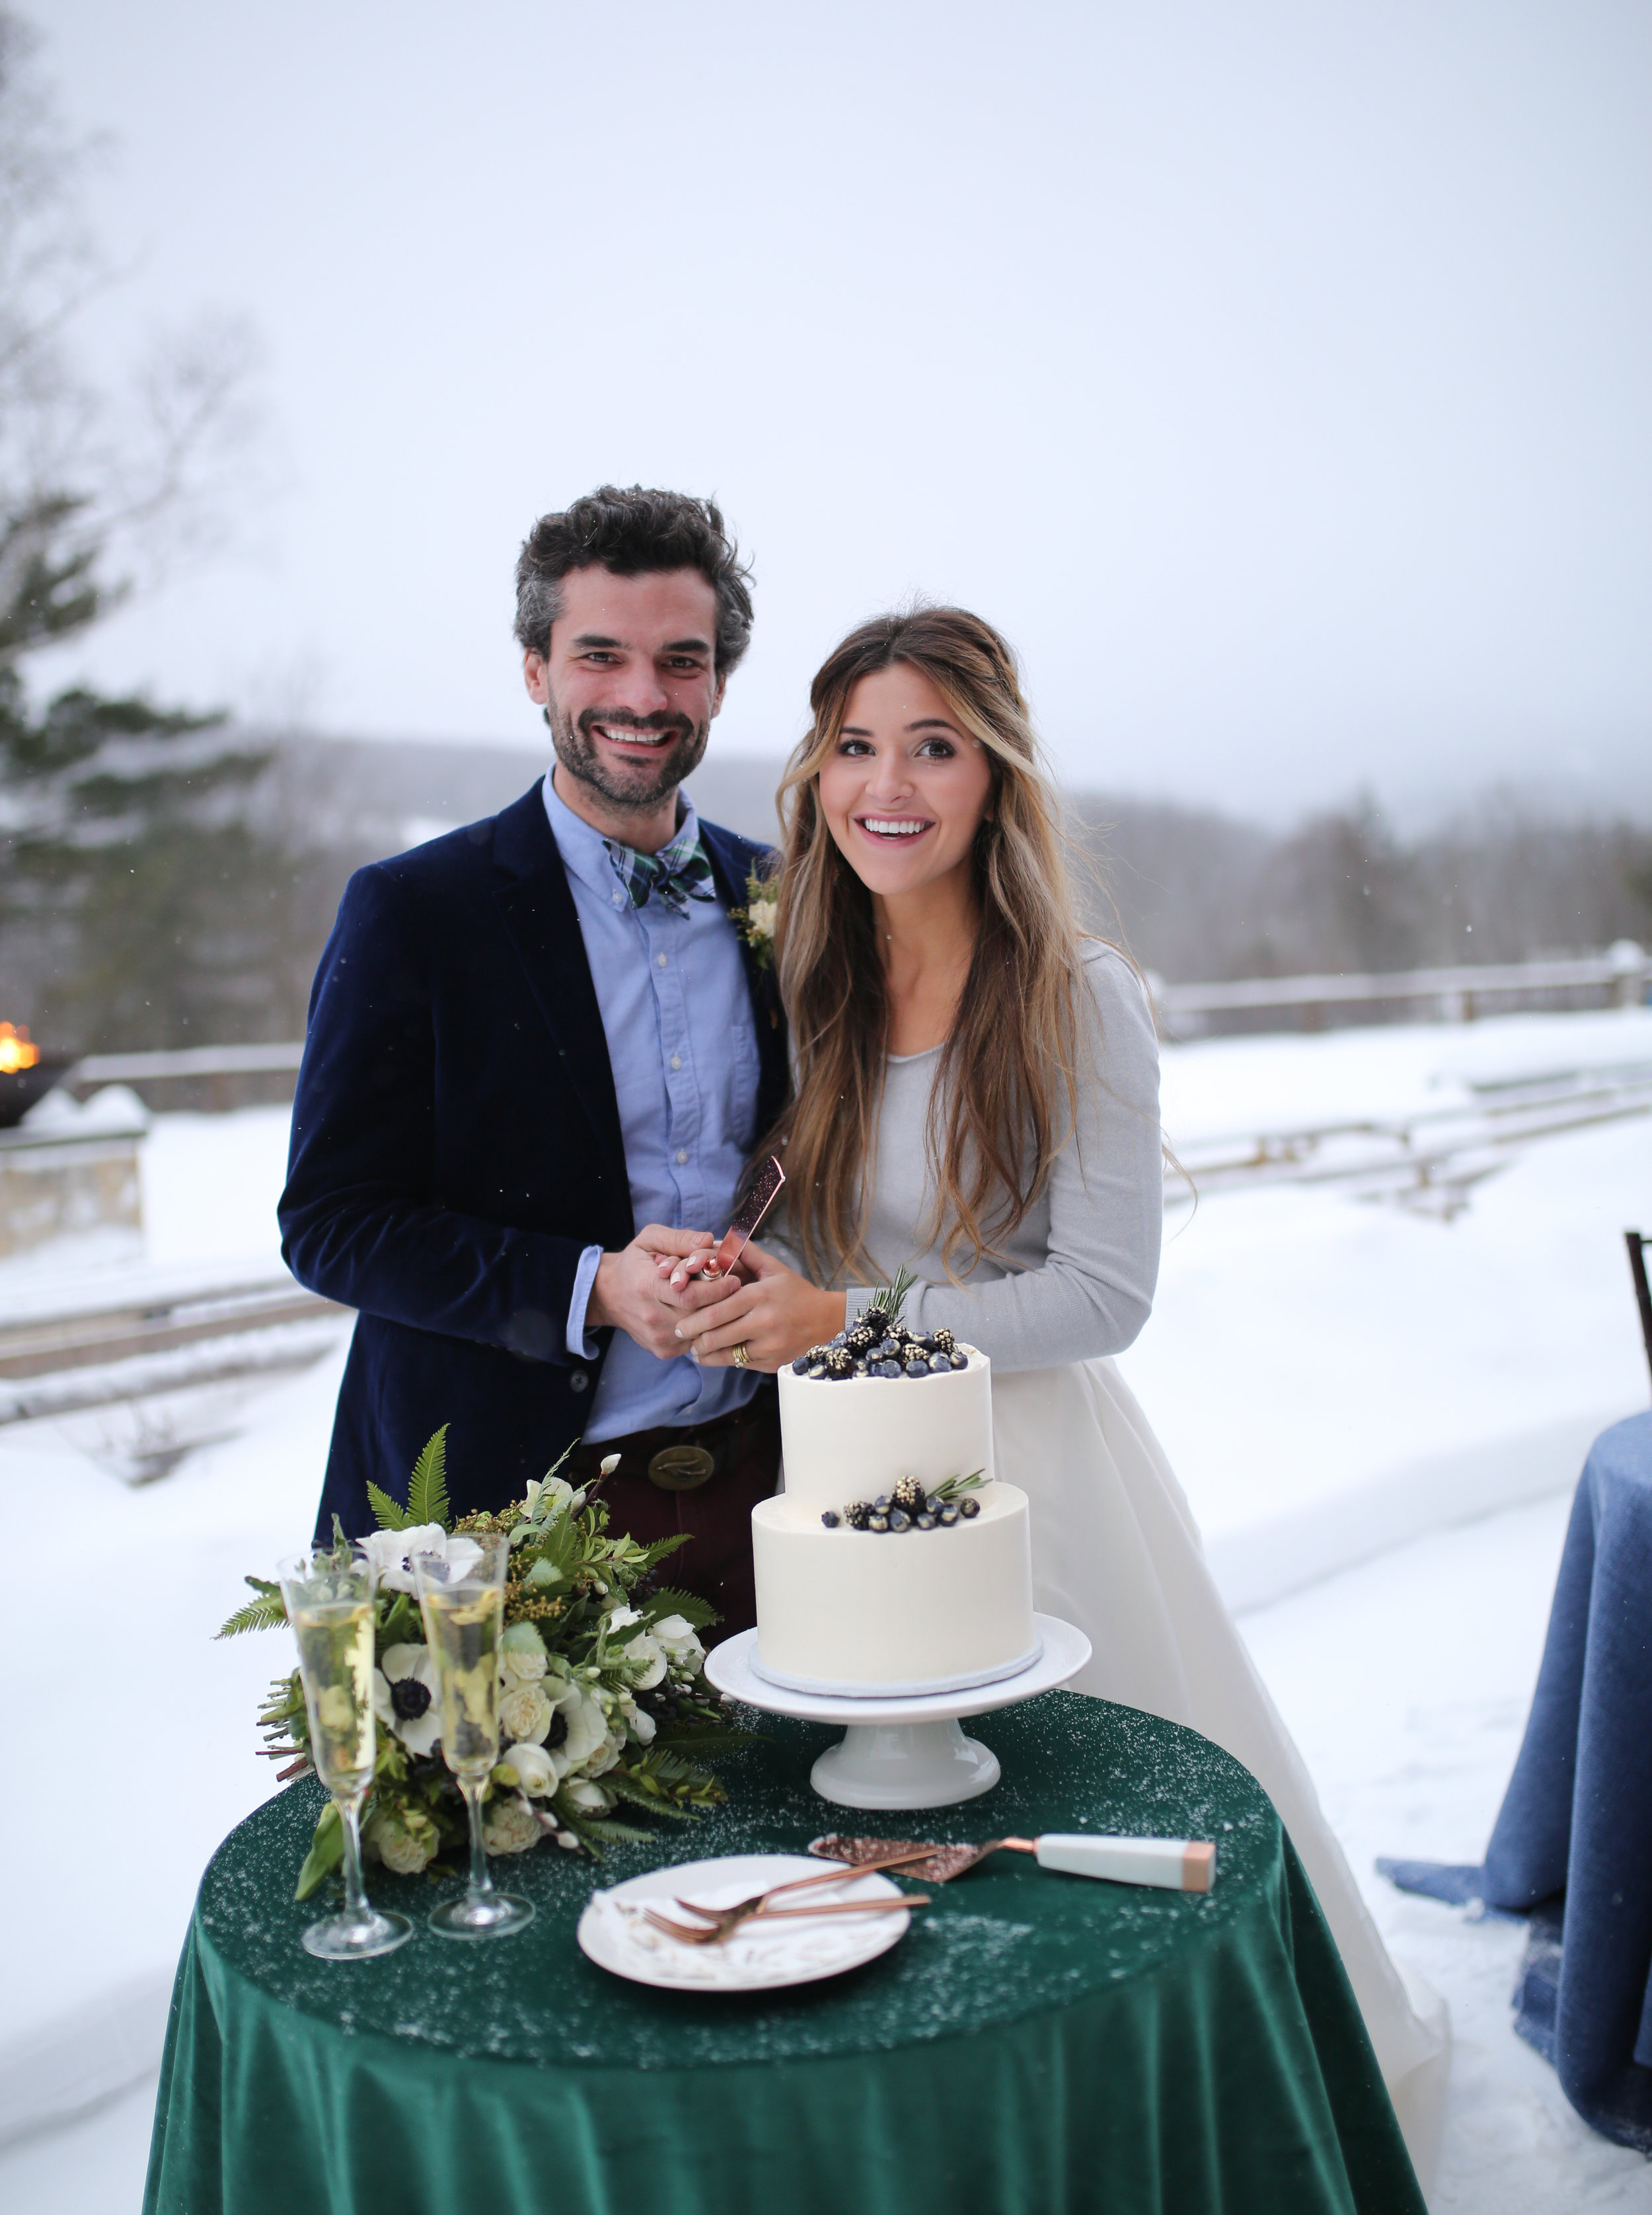 Winter Styled Shoot, Stowe Vermont (331 of 341).jpg